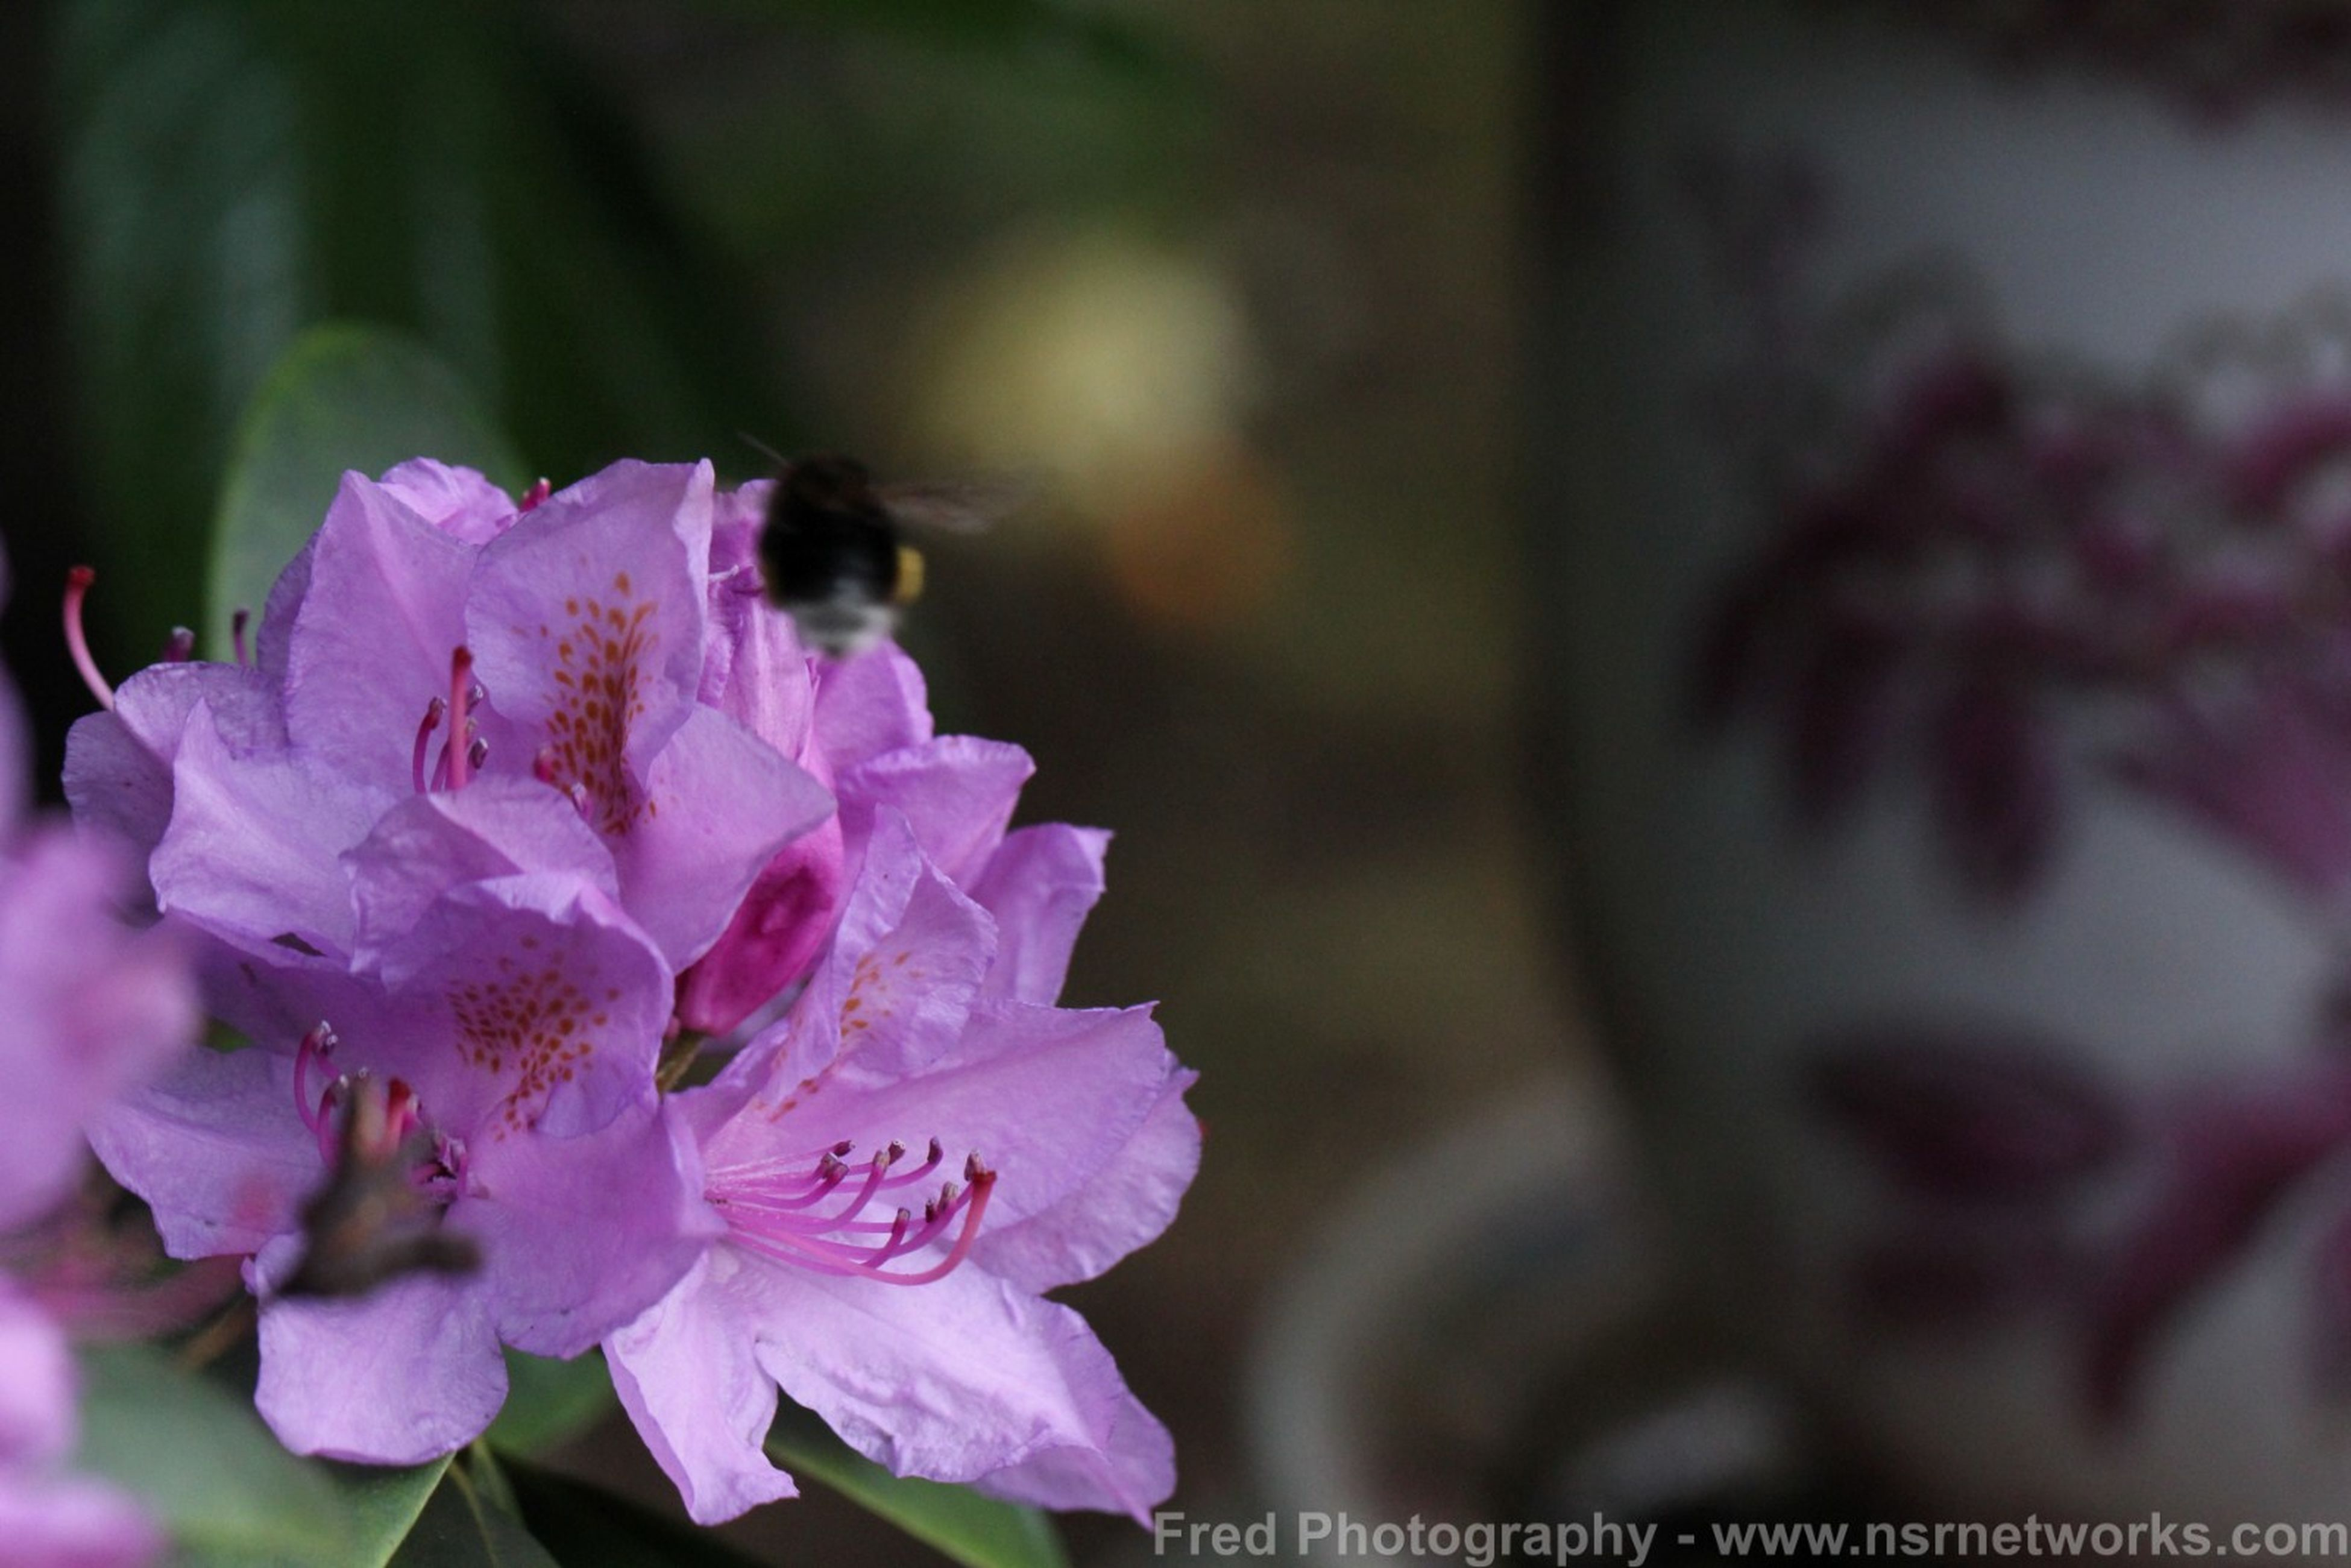 flower, petal, freshness, fragility, flower head, close-up, beauty in nature, growth, focus on foreground, blooming, nature, pink color, in bloom, drop, purple, stamen, plant, blossom, wet, selective focus